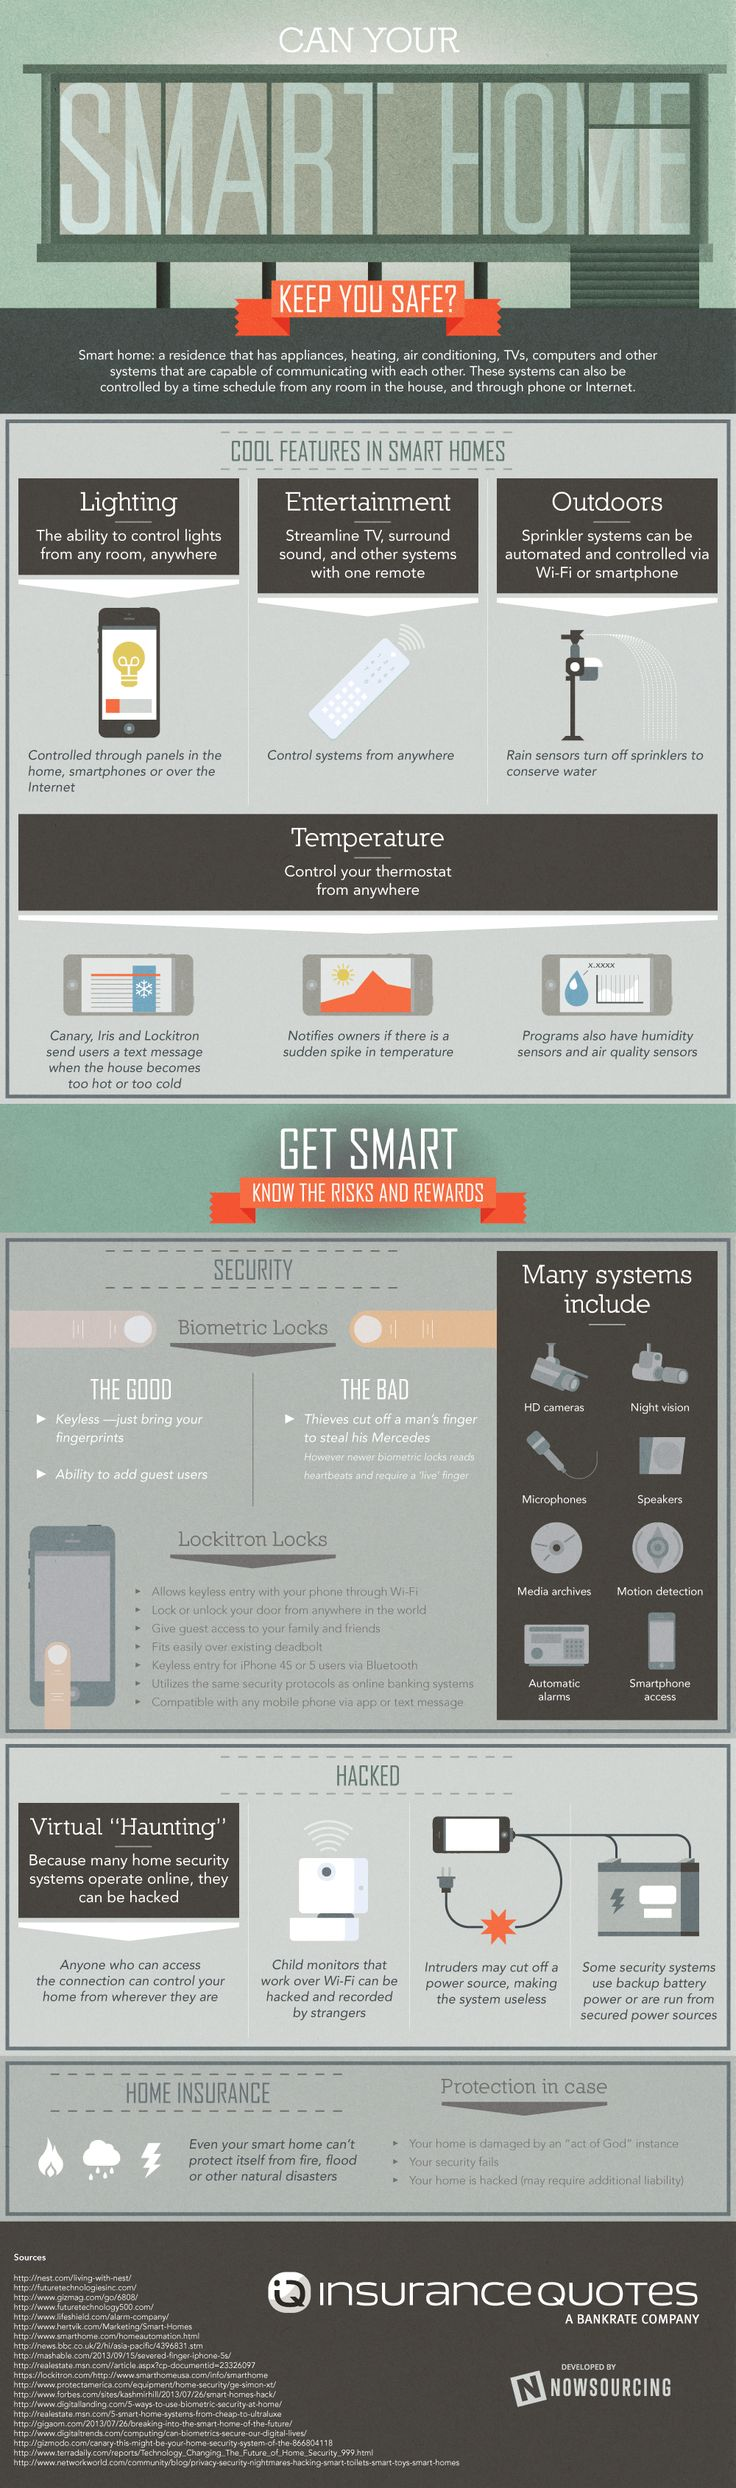 Can Your Smart Home Keep You Safe? #Infographic #SmartHome